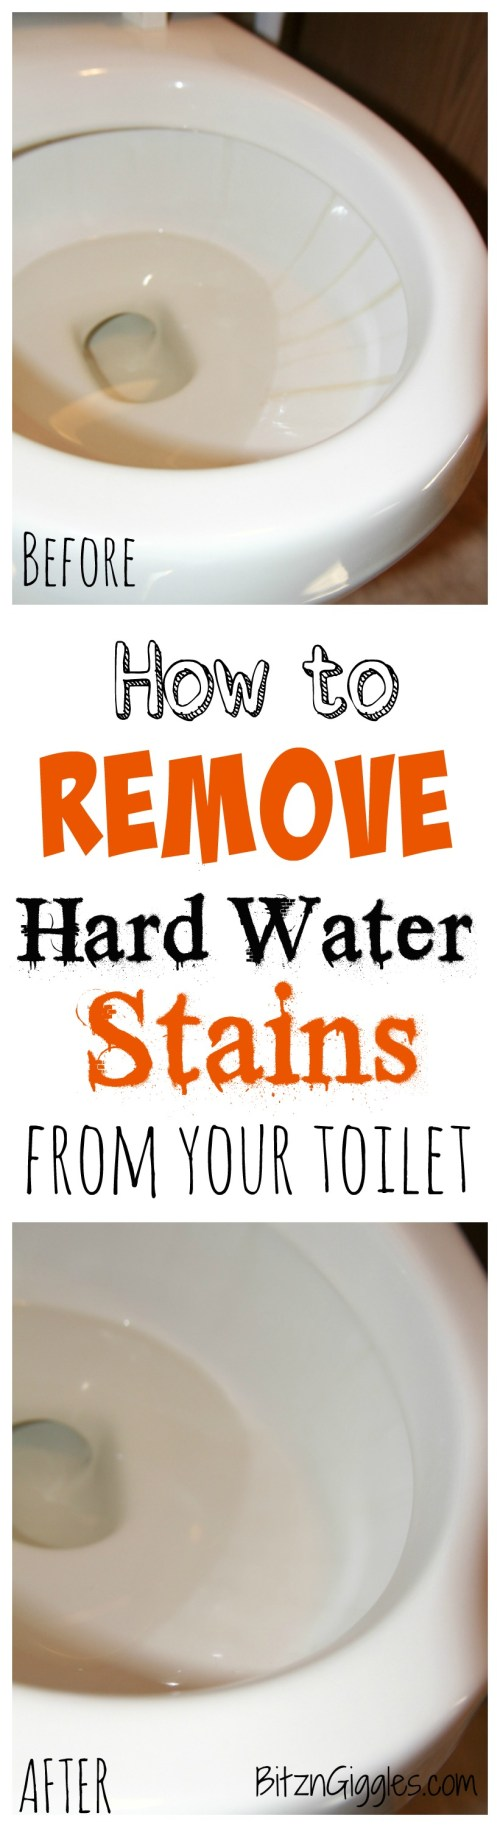 How to Remove Hard Water Stains From Your Toilet -A safe, effective and natural way to remove hard water stains from your toilet without any harsh chemicals. It literally takes minutes and leaves your toilet bowl clean and sparkly like it was when you purchased it!